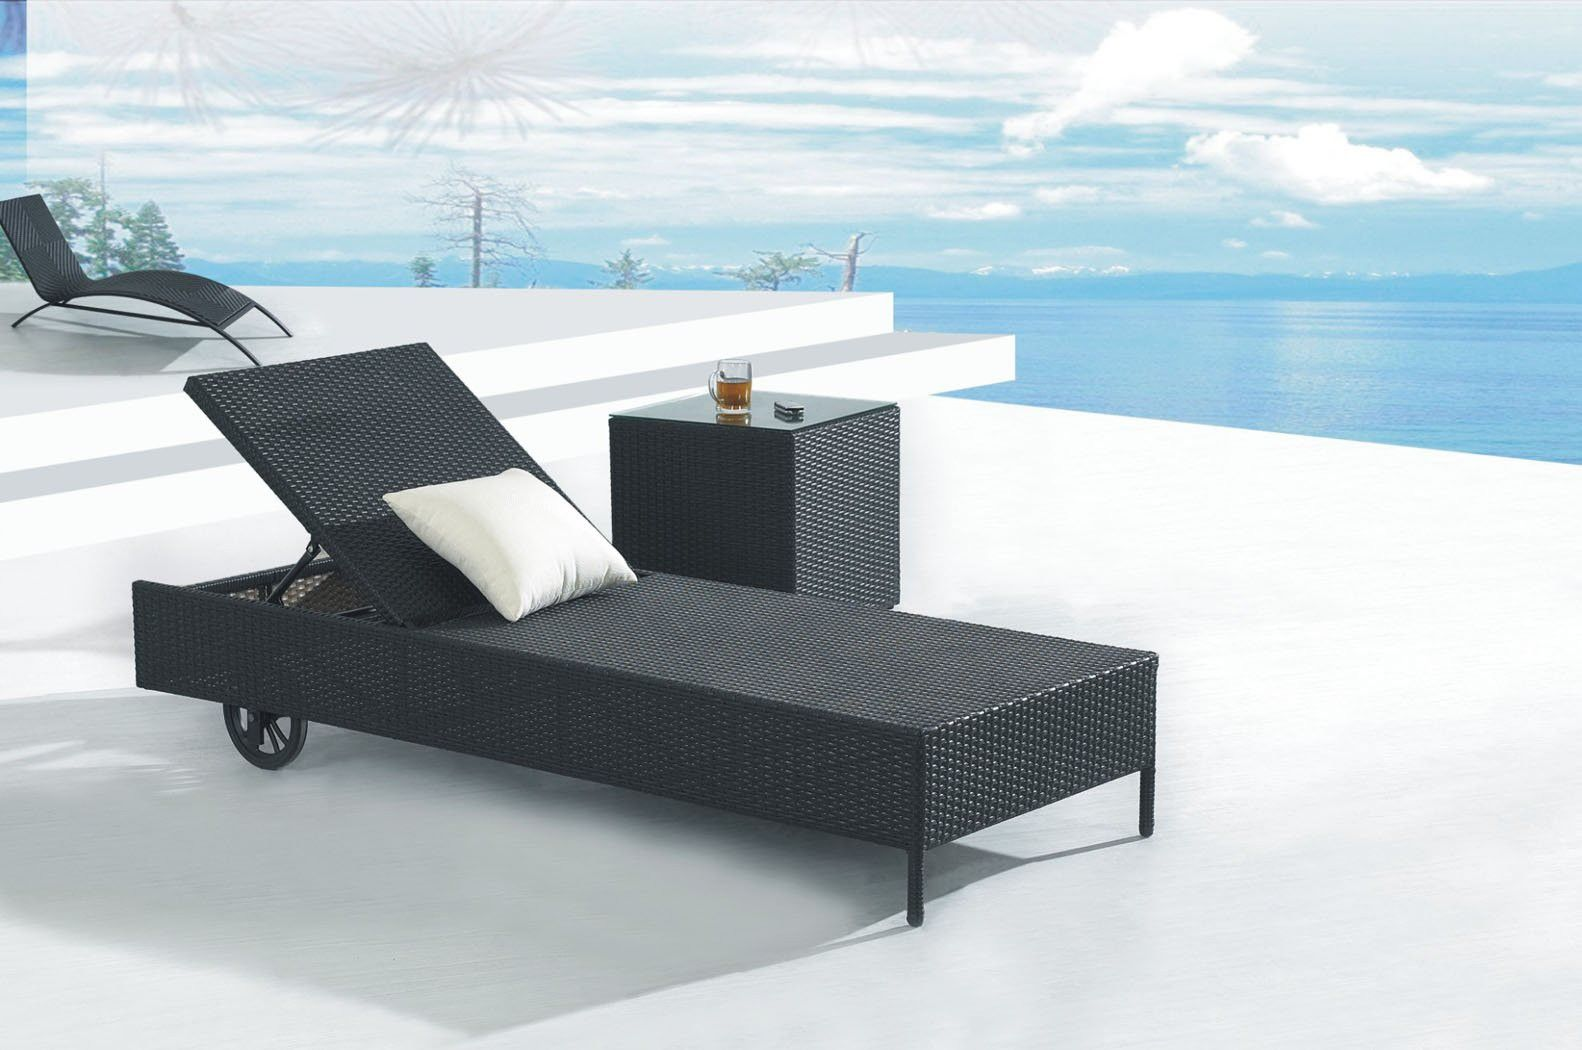 Modern Black Wicker Chaise Lounge Chairs With Roller Outdoor Chaise Lounge Chair Patio Chaise Lounge Lounge Chair Outdoor